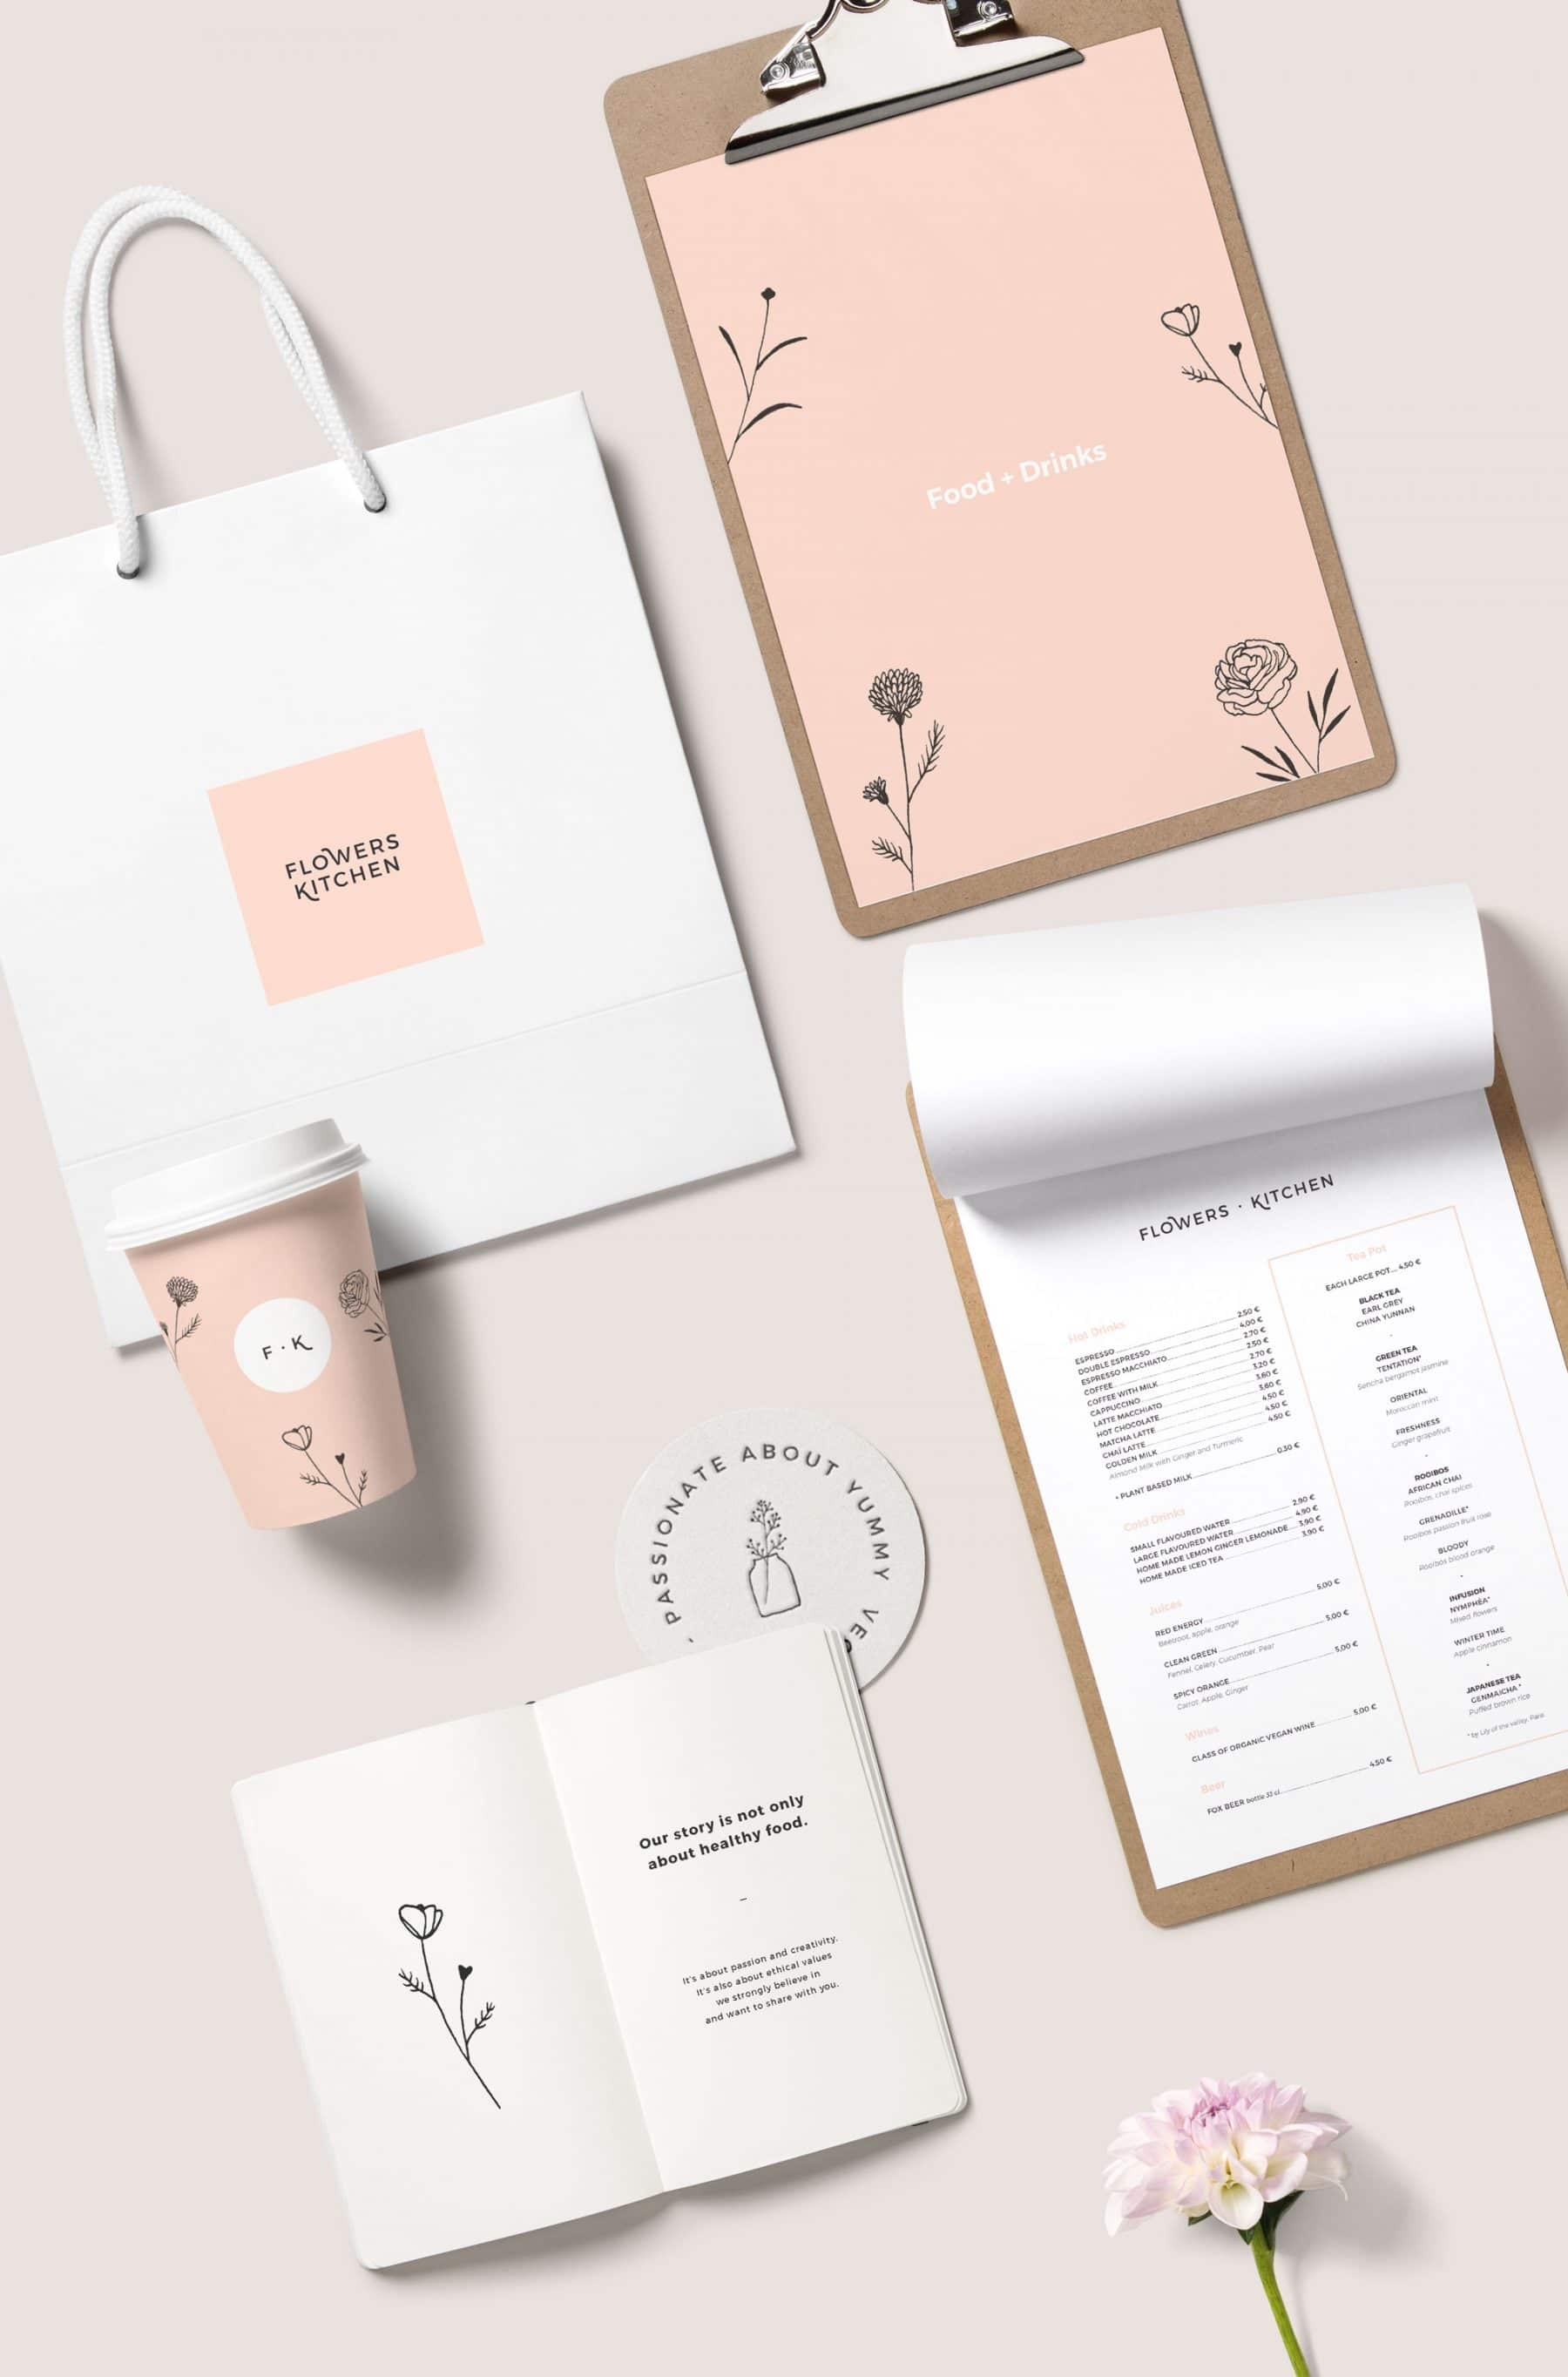 Flowers-Kitchen-Kinlake-Stationary-Design-02